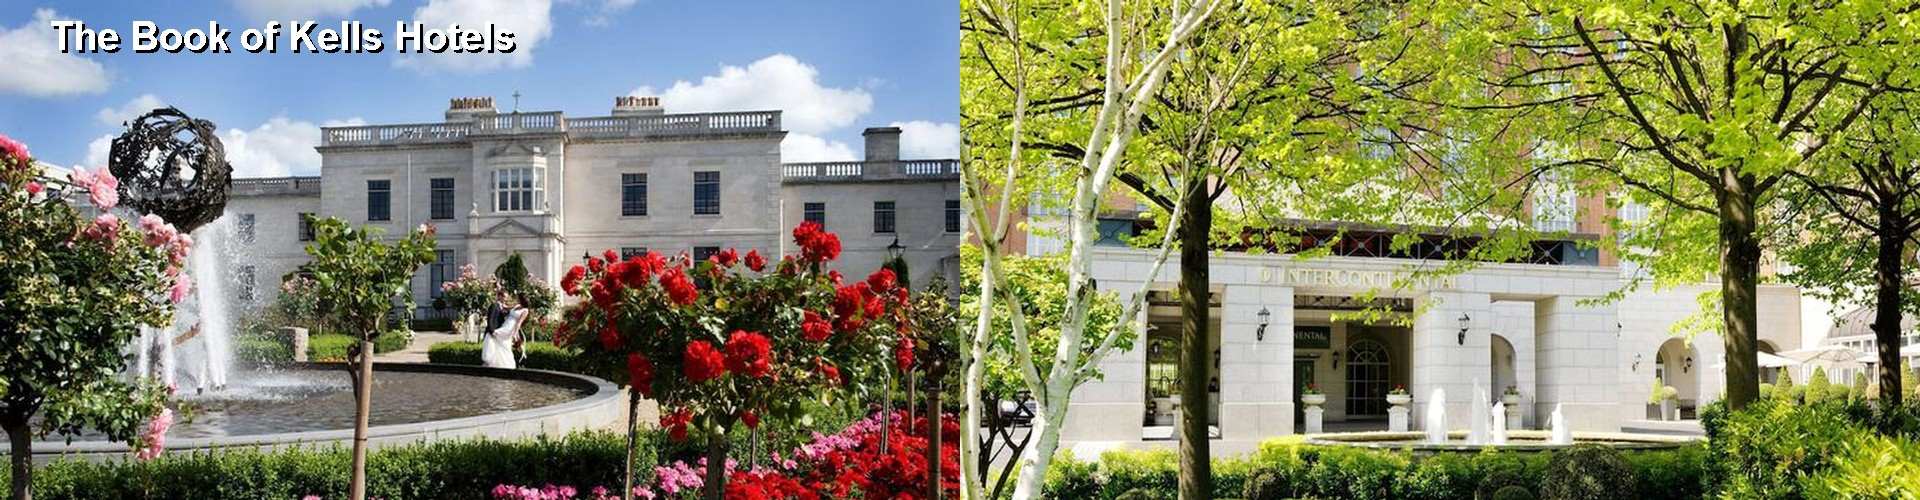 5 Best Hotels near The Book of Kells